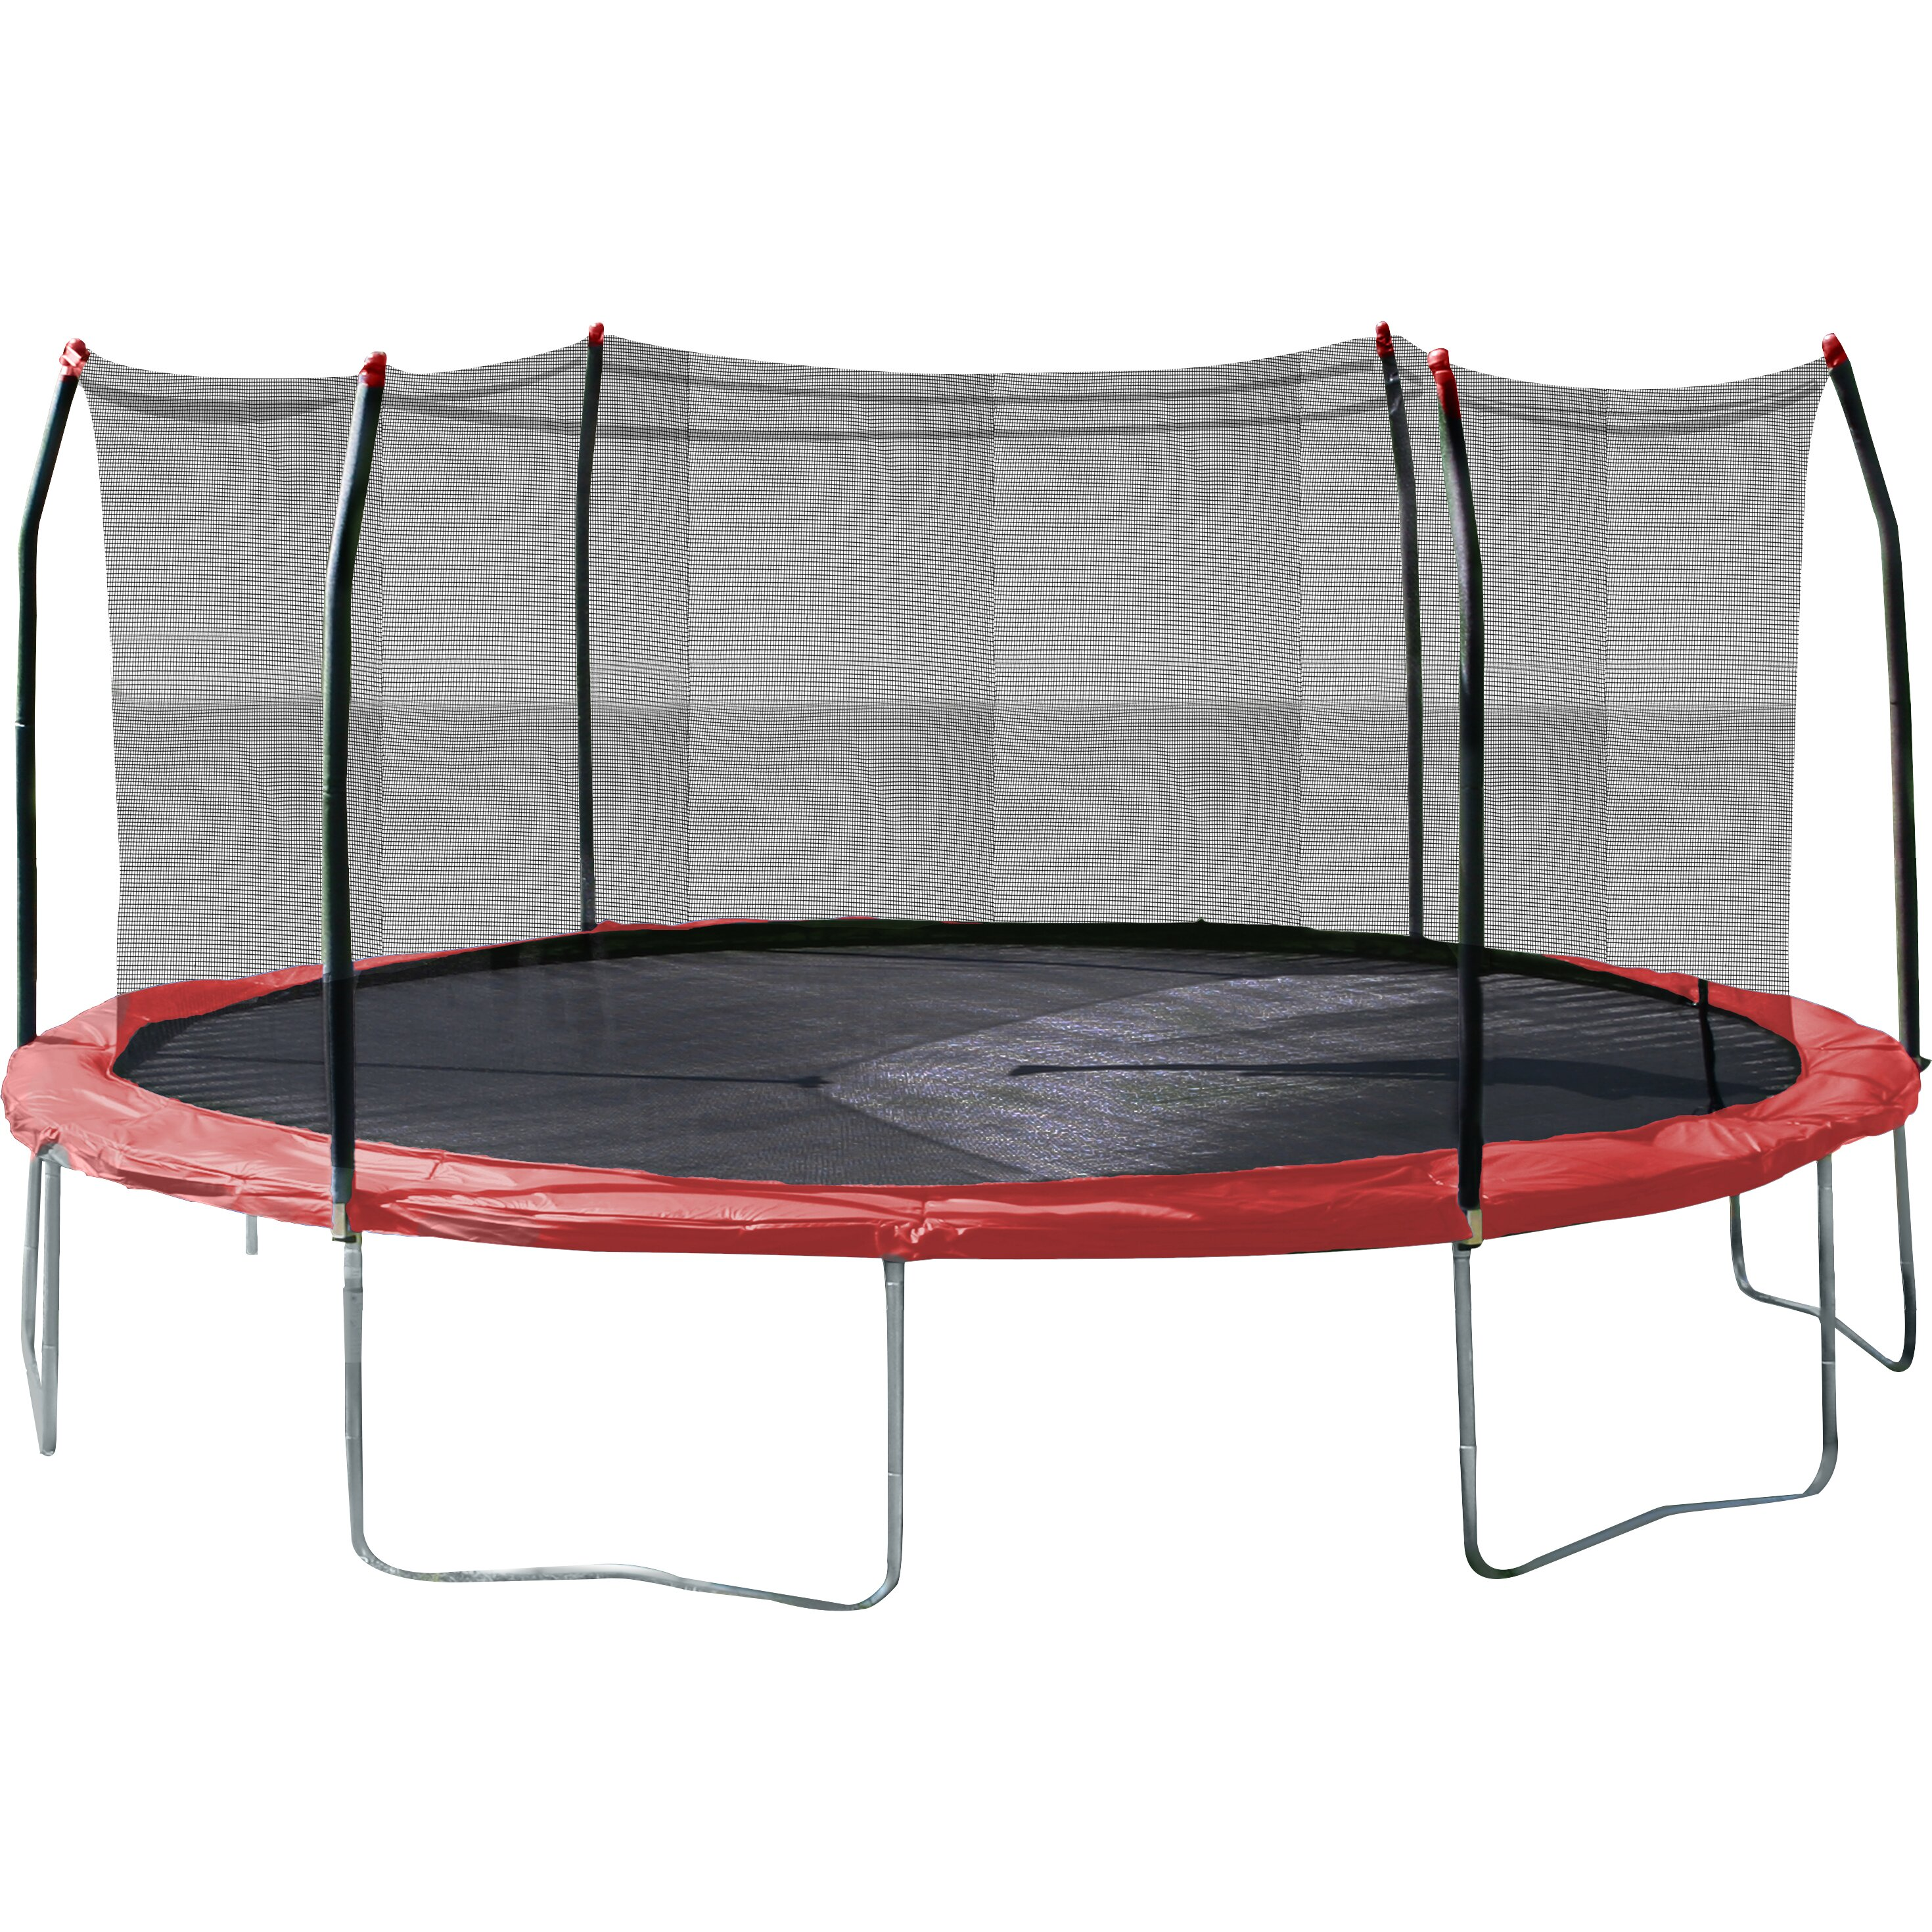 17 X 15 Oval Trampoline With Safety Enclosure: 17' X 15' Oval Trampoline With Safety Enclosure